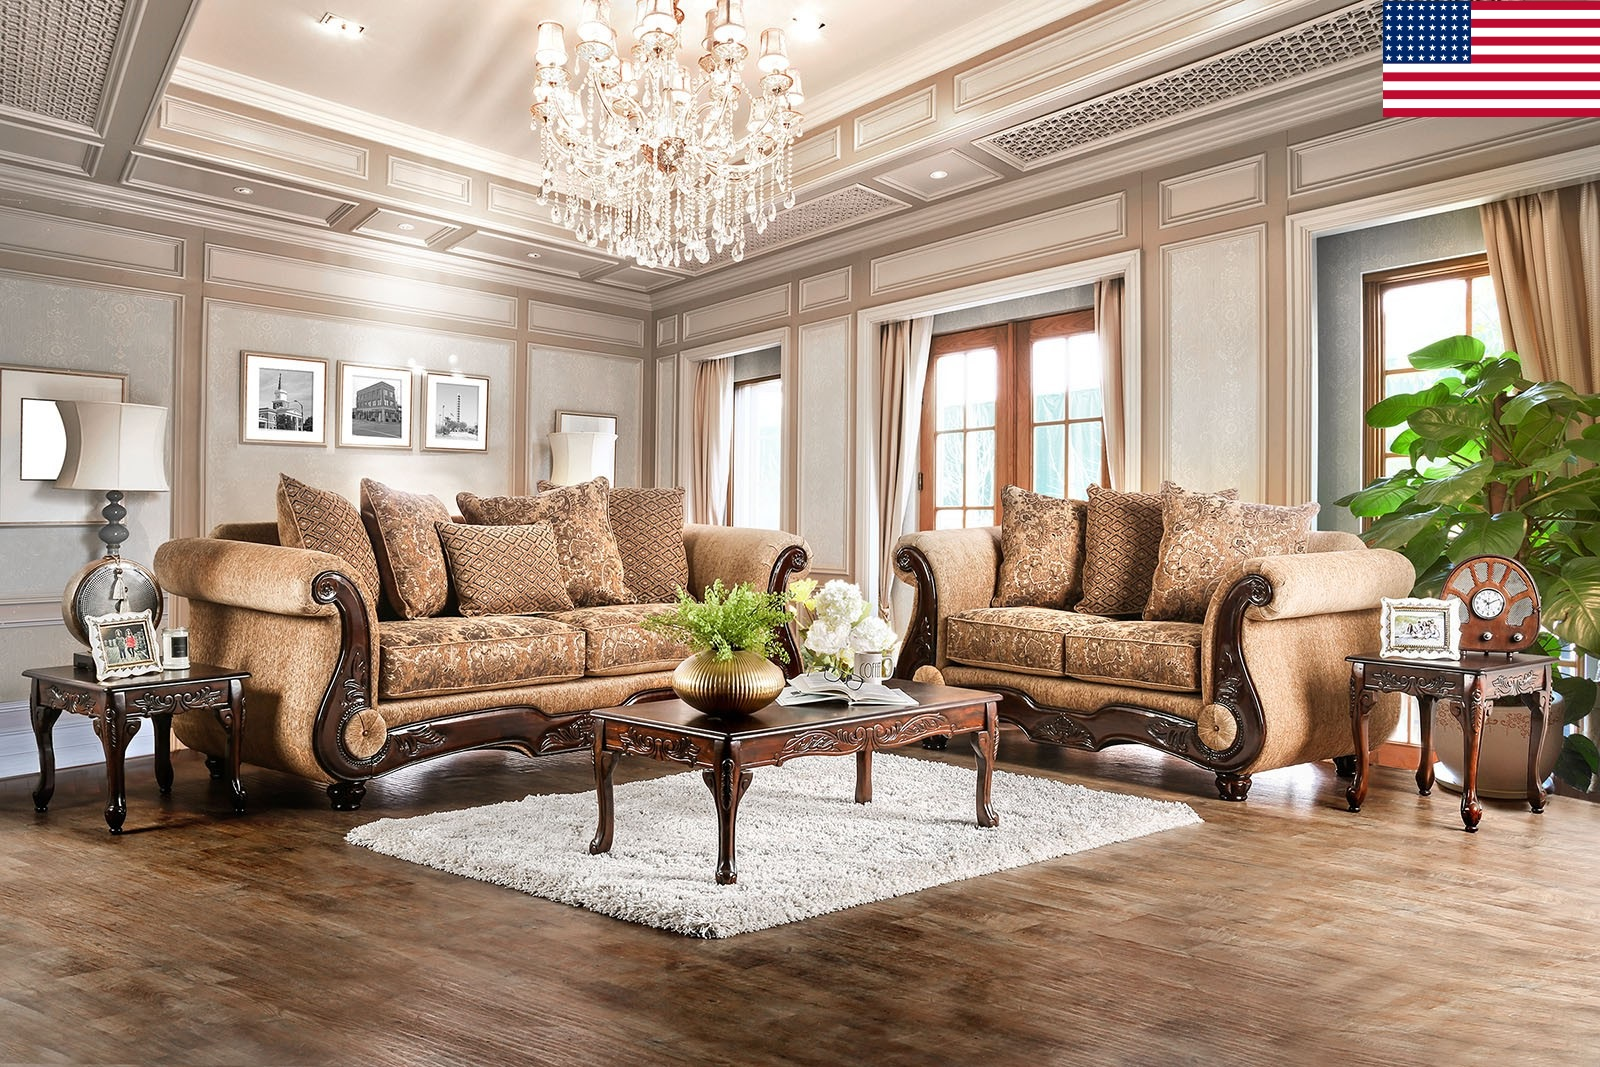 Traditional Living Room Furniture 2pc Sofa Set Gold/Bronze ...